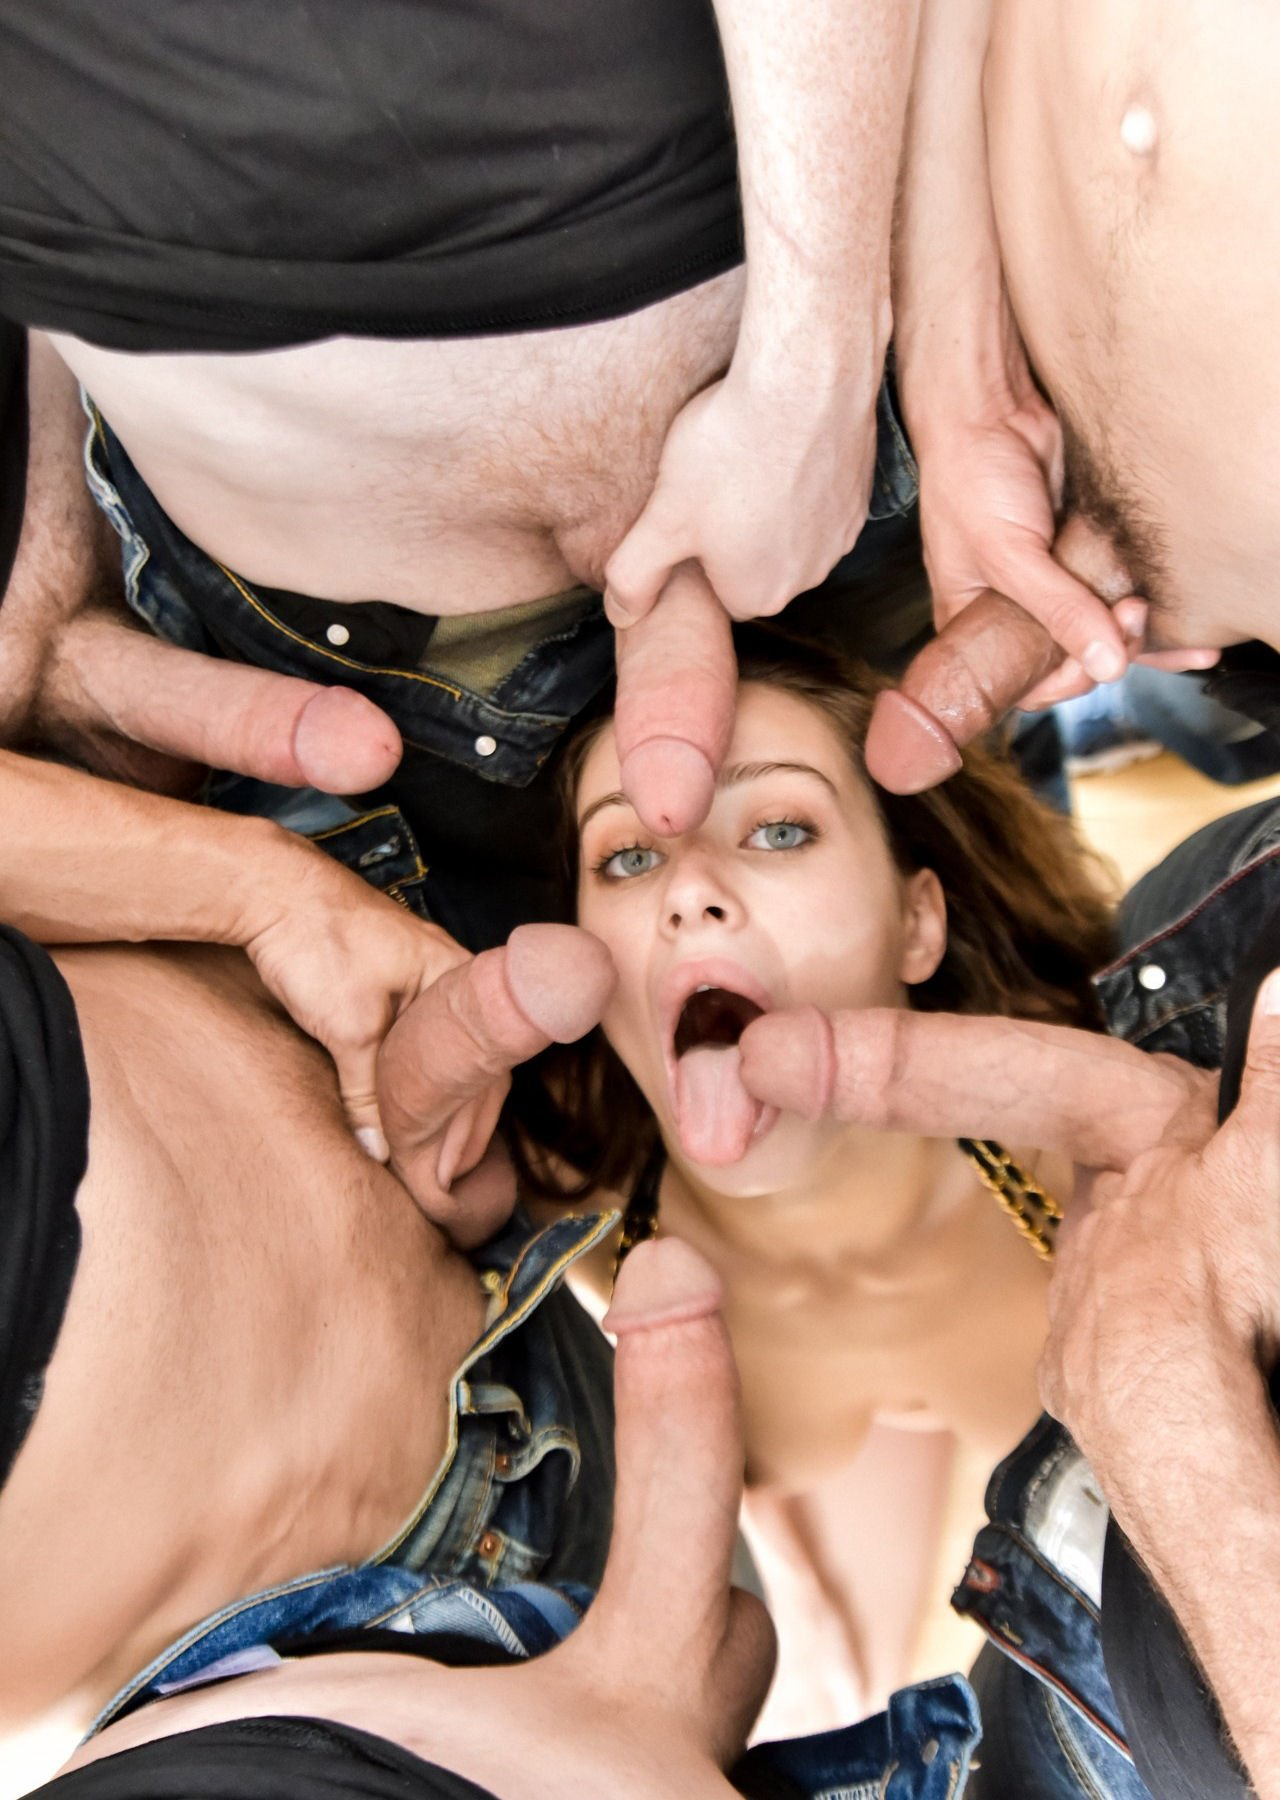 Amateur Anal Fisting and Fucking Anal, HD Porn: xHamster rough - abuserporn.com